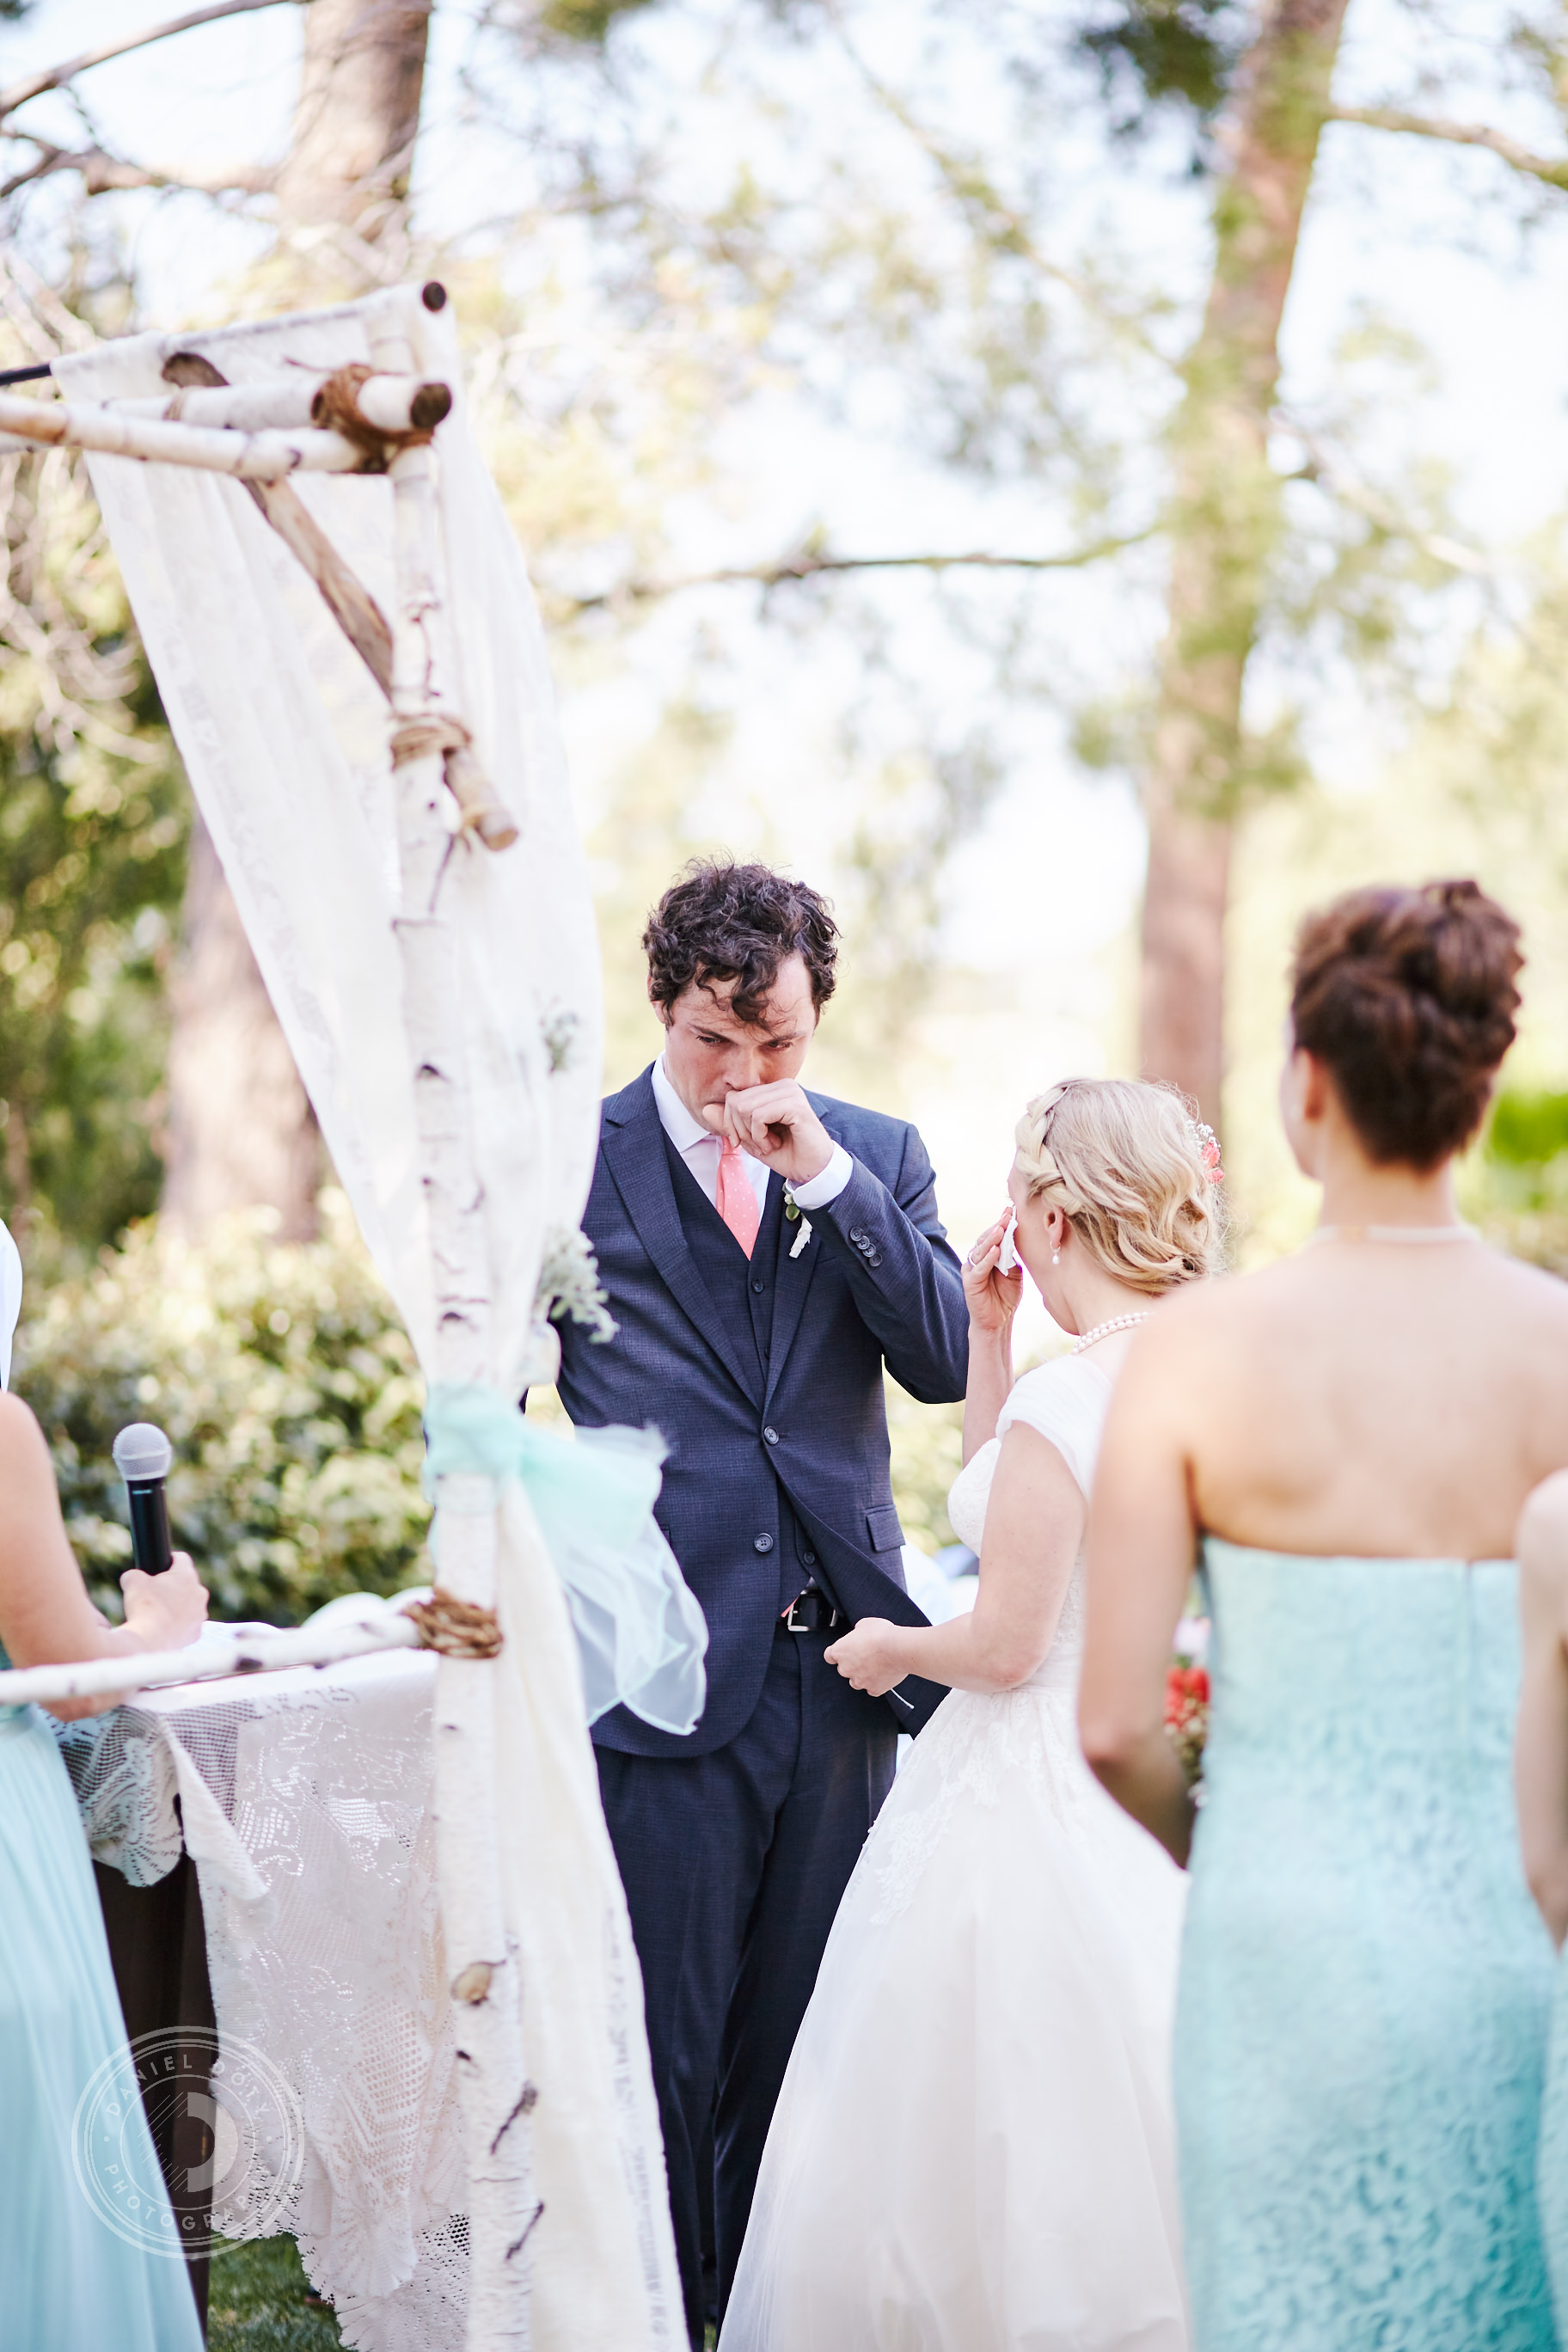 Daniel Doty Photography Erin Colin SoCal Wedding Photographer Strathearn 137.jpg